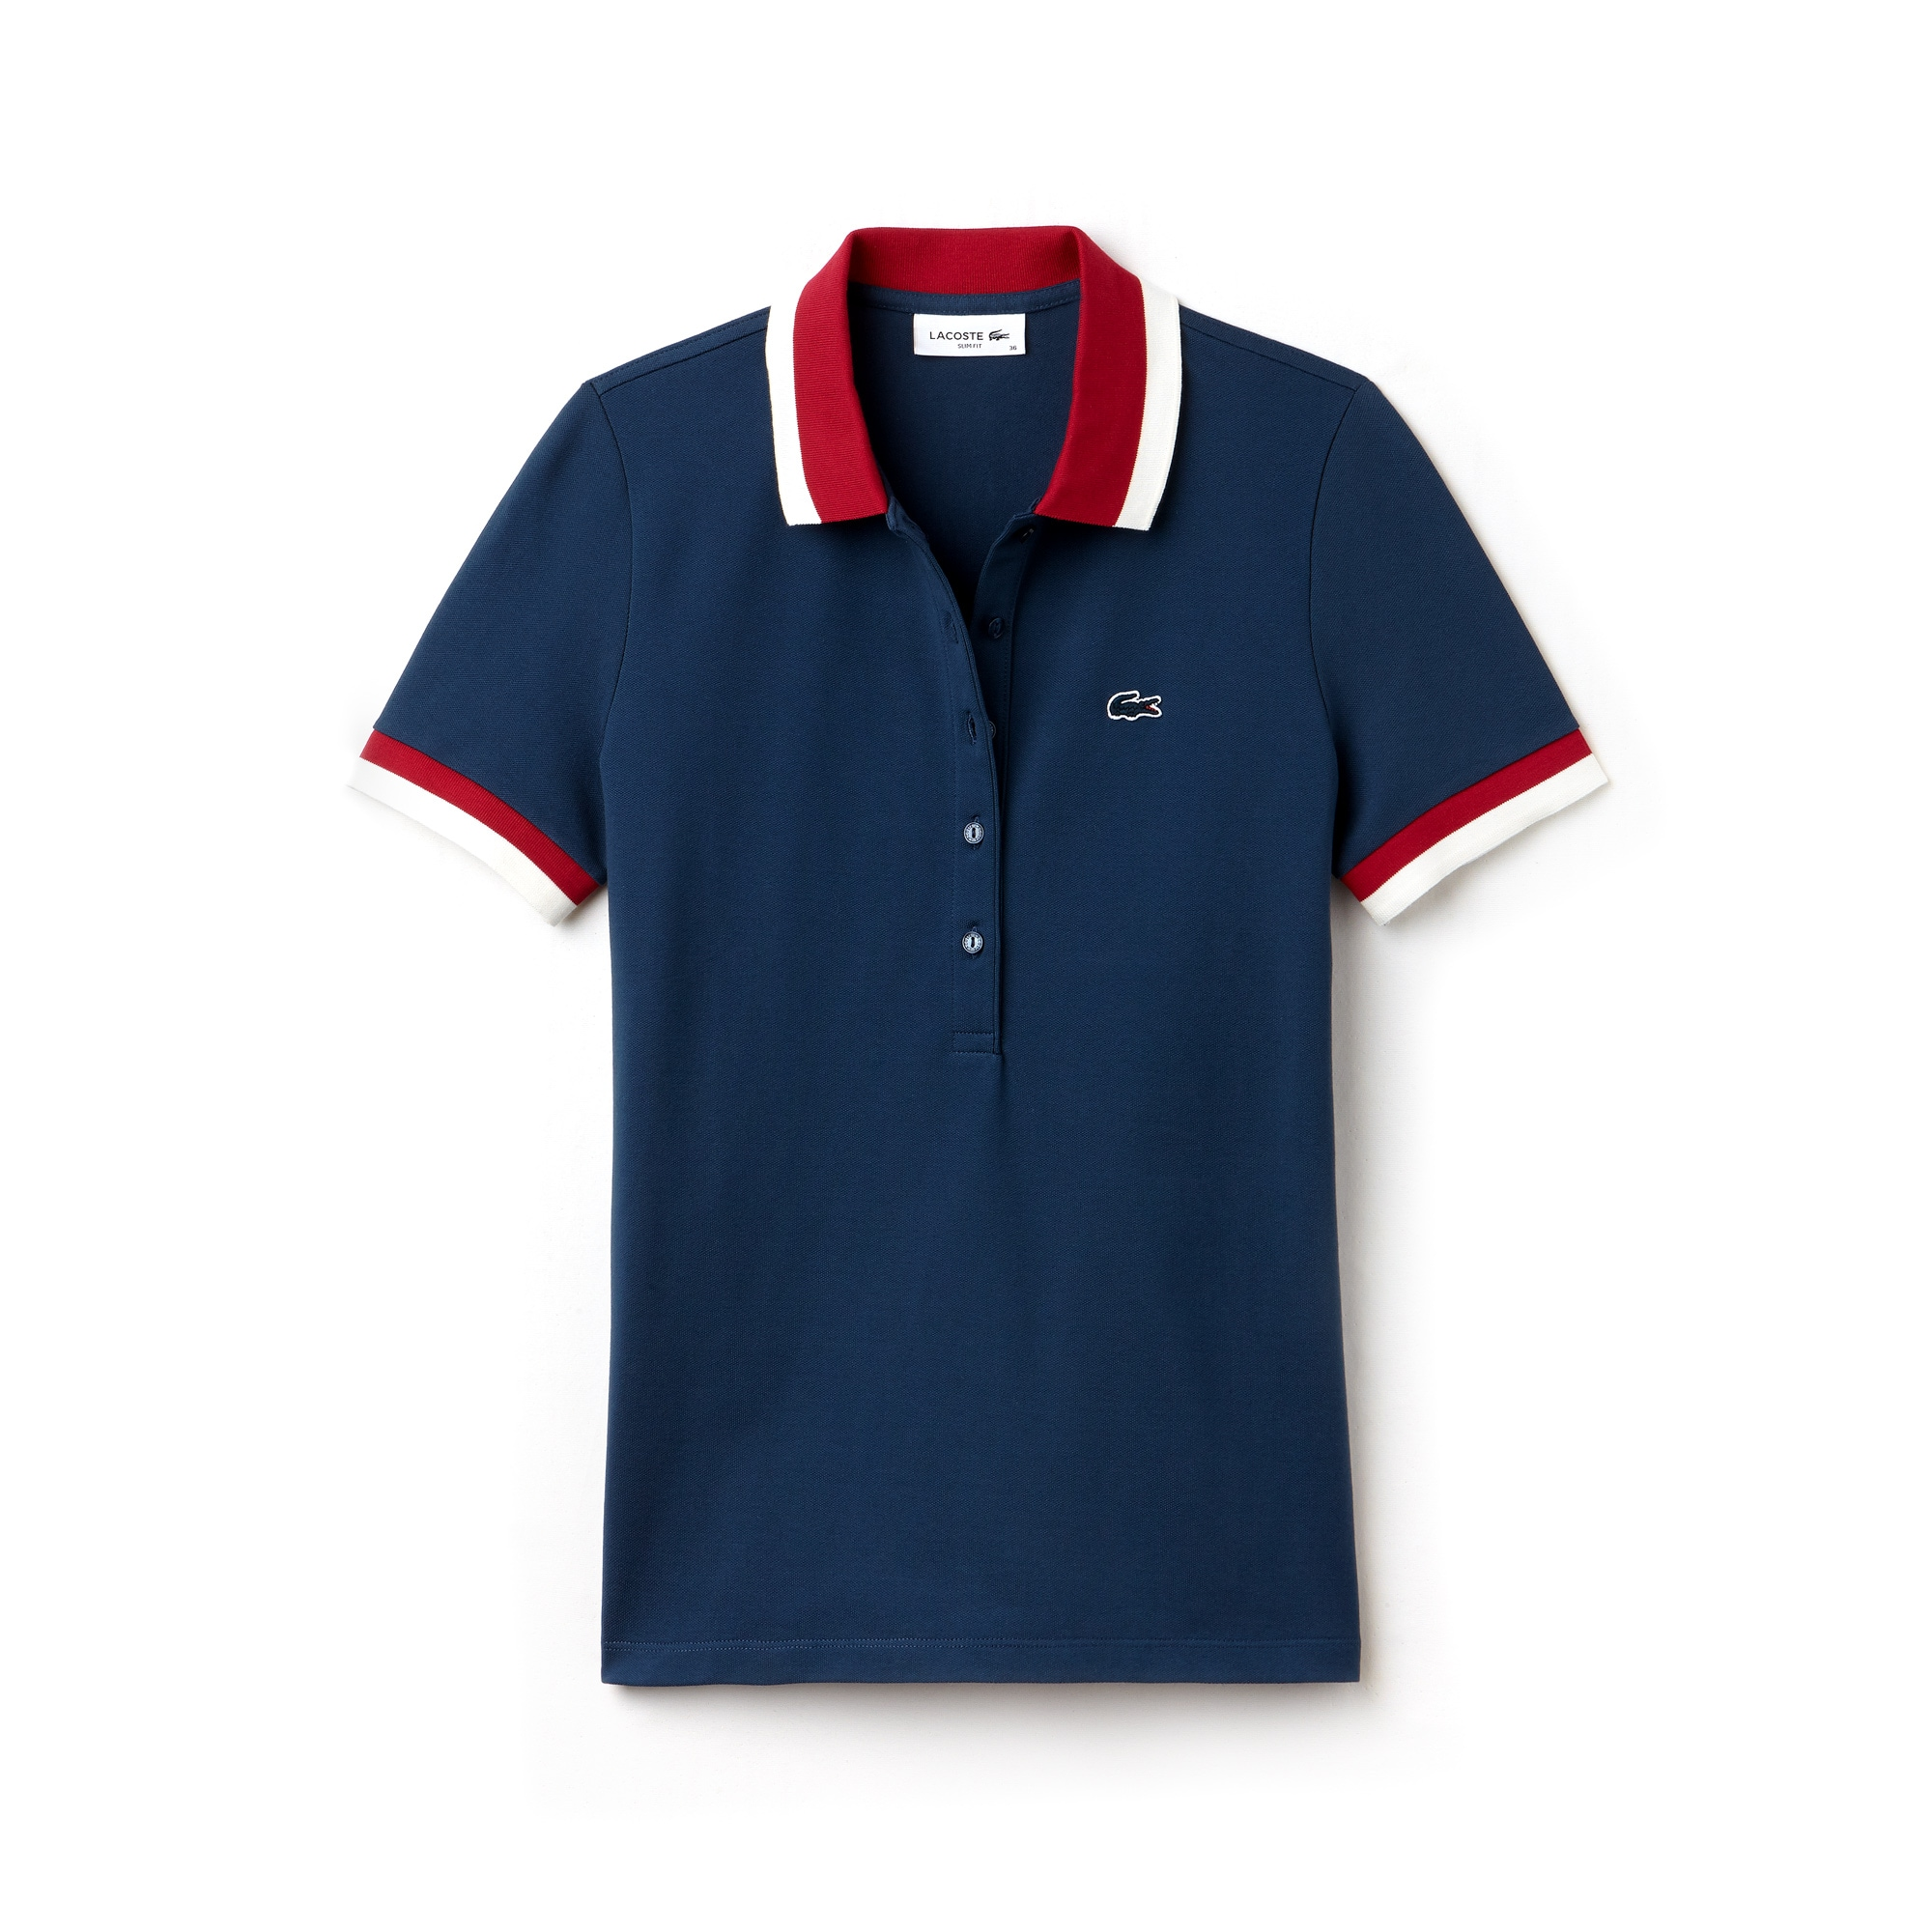 라코스테 Lacoste Womens Slim Fit Bicolor Finishes Stretch Mini Pique Polo,blue / red / white